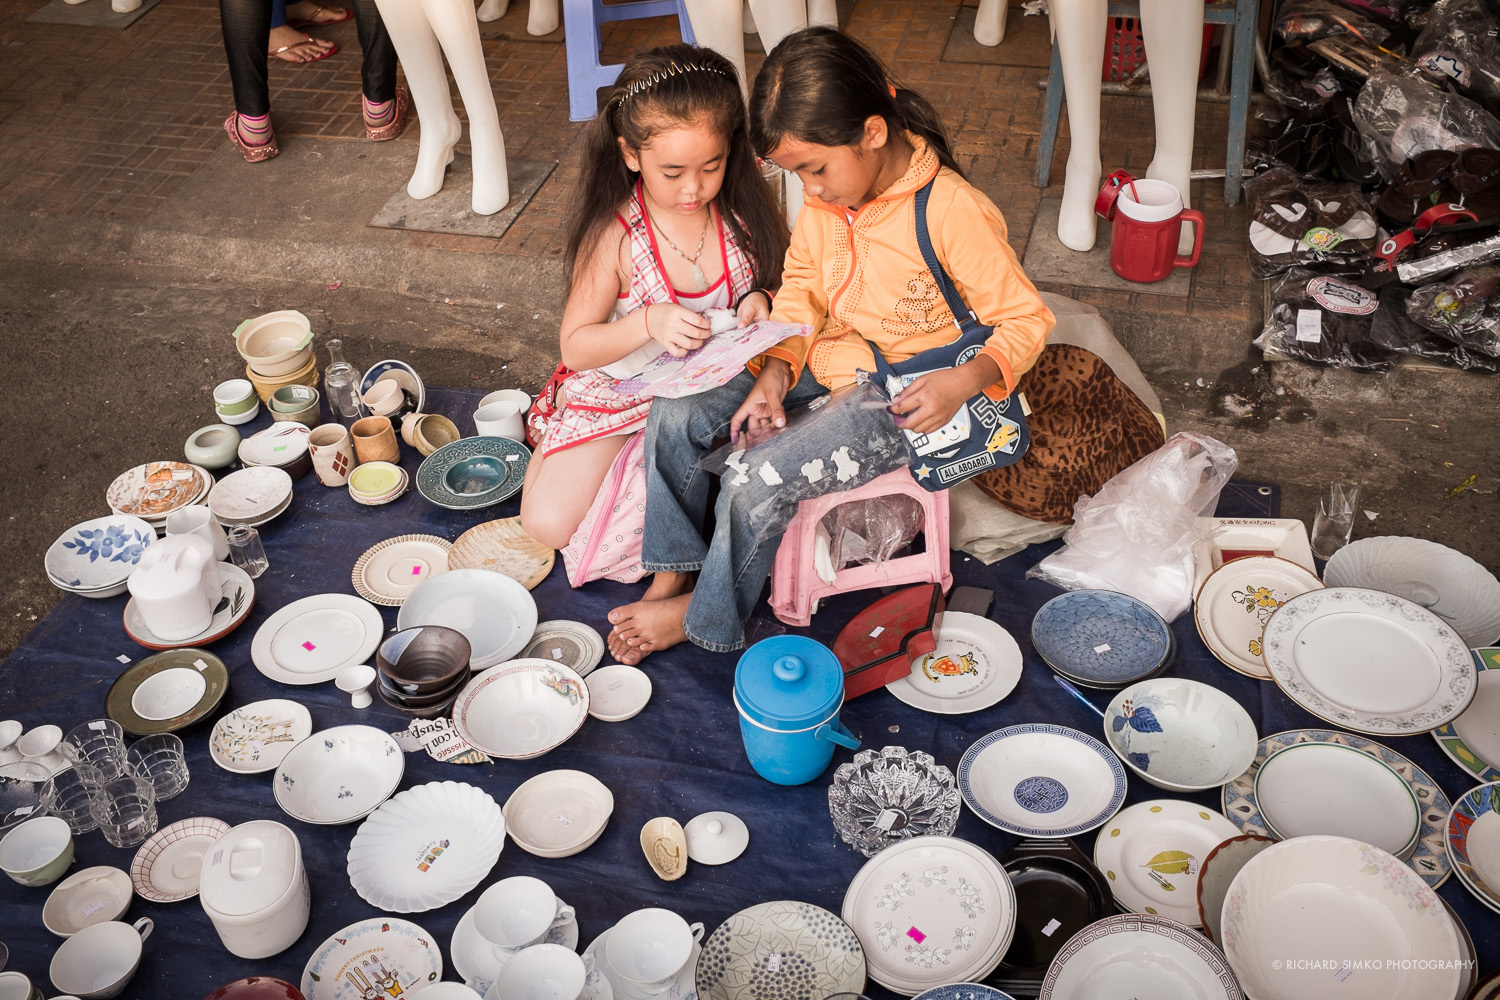 """Girls discussing """"girl stuff"""" in the middle of pottery stall."""